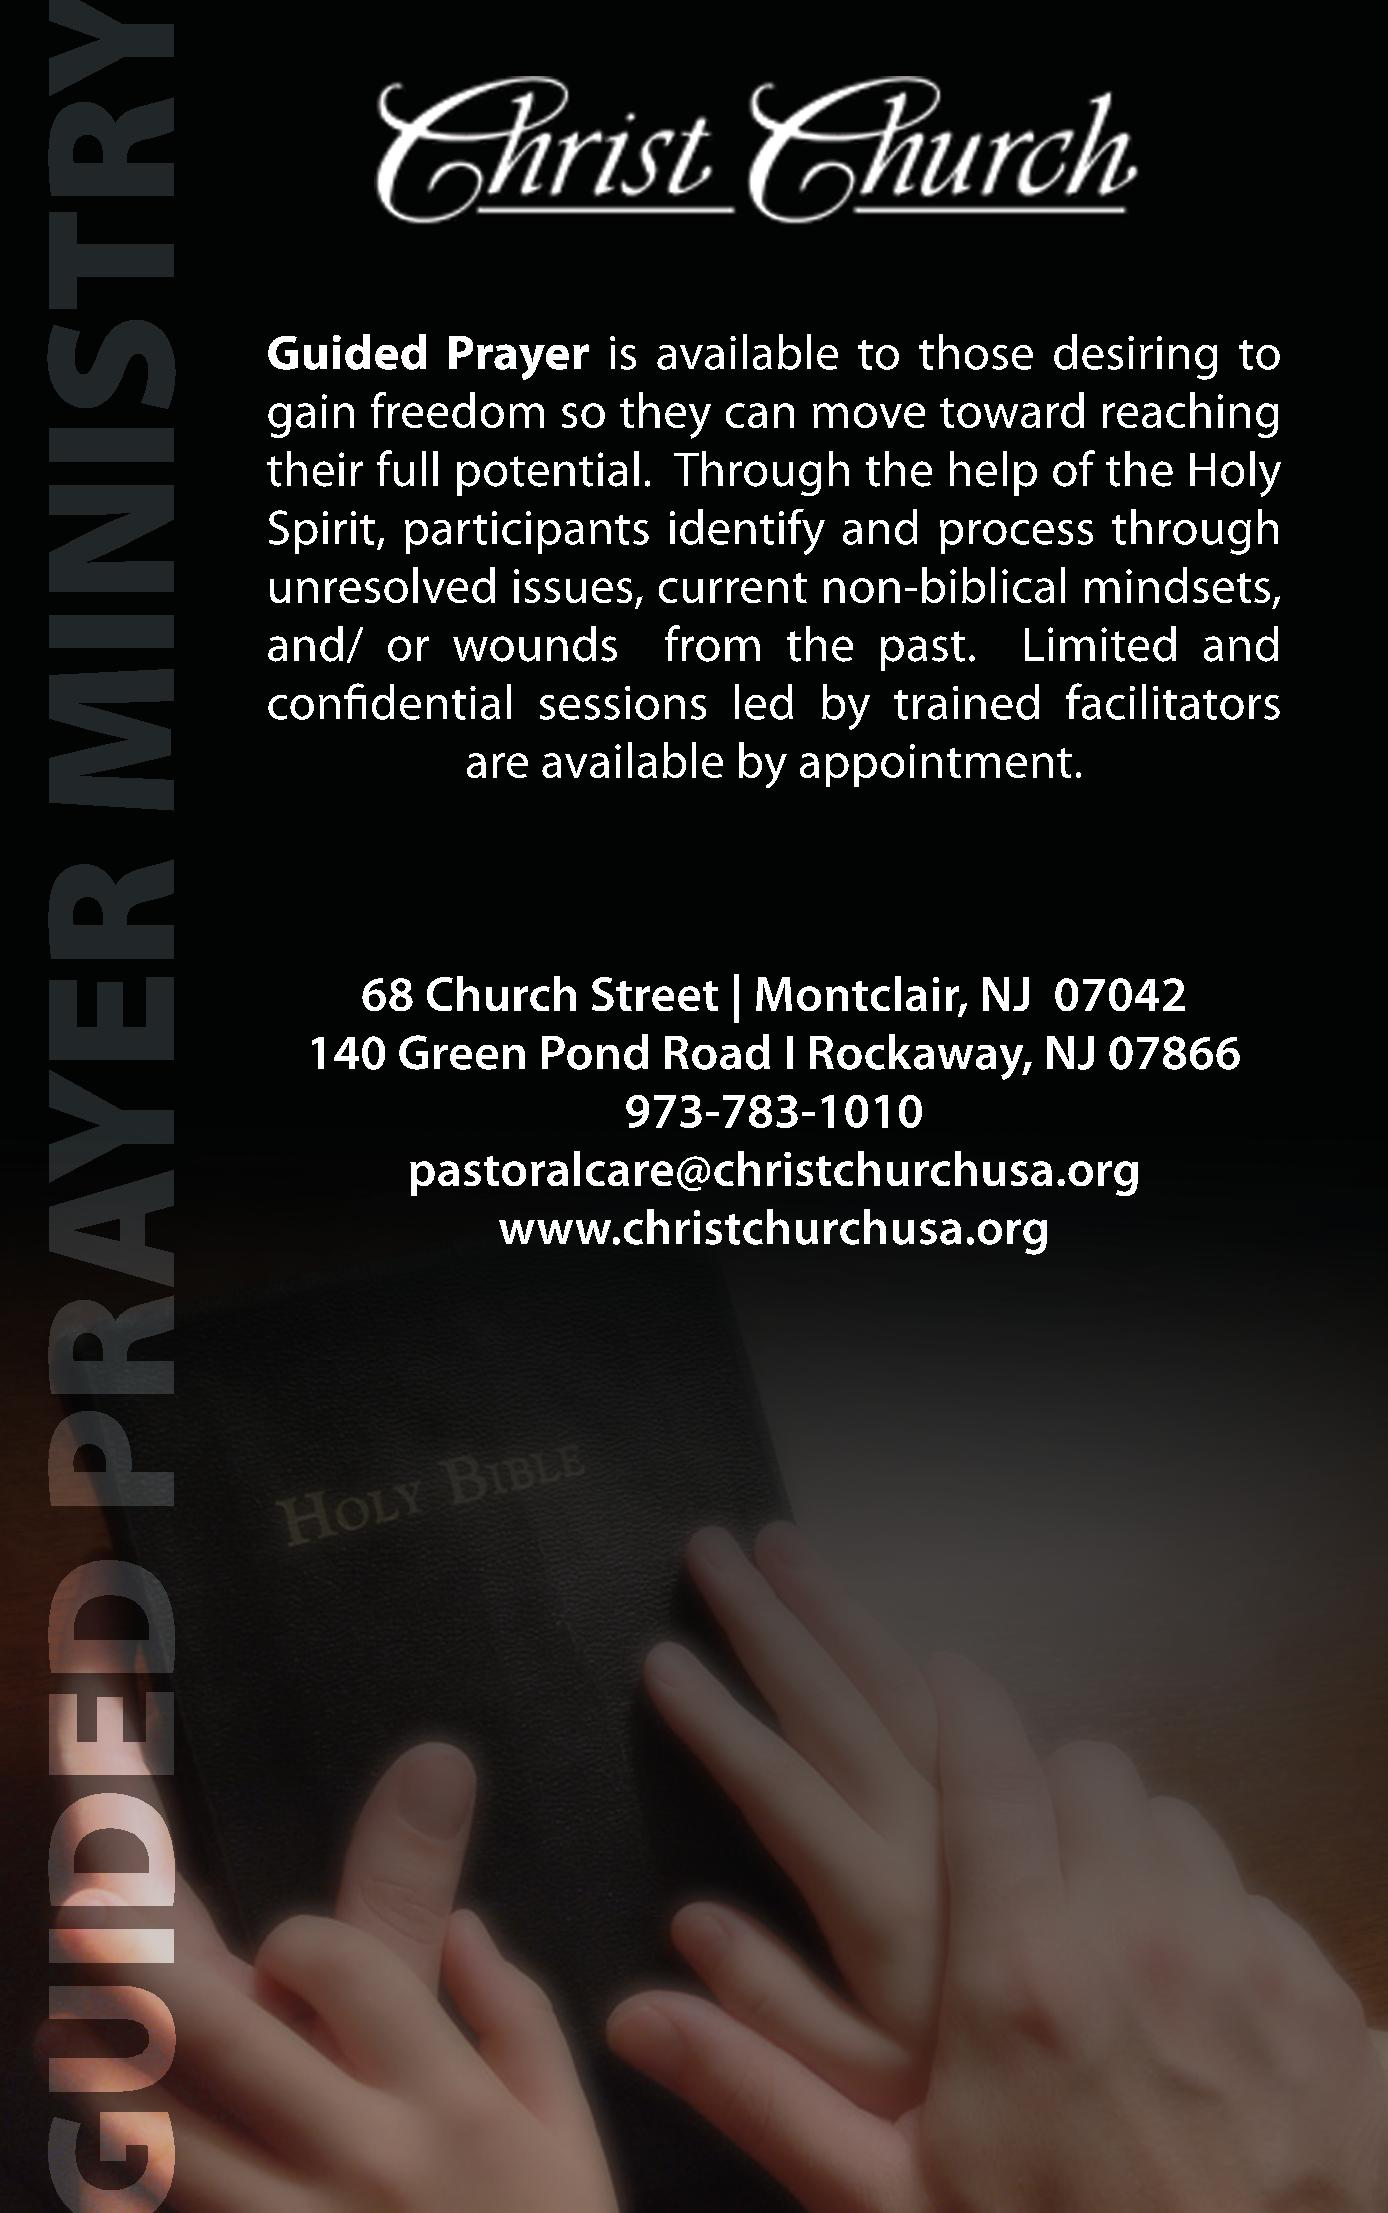 Christ Church Ministry Ad - Guided Prayer